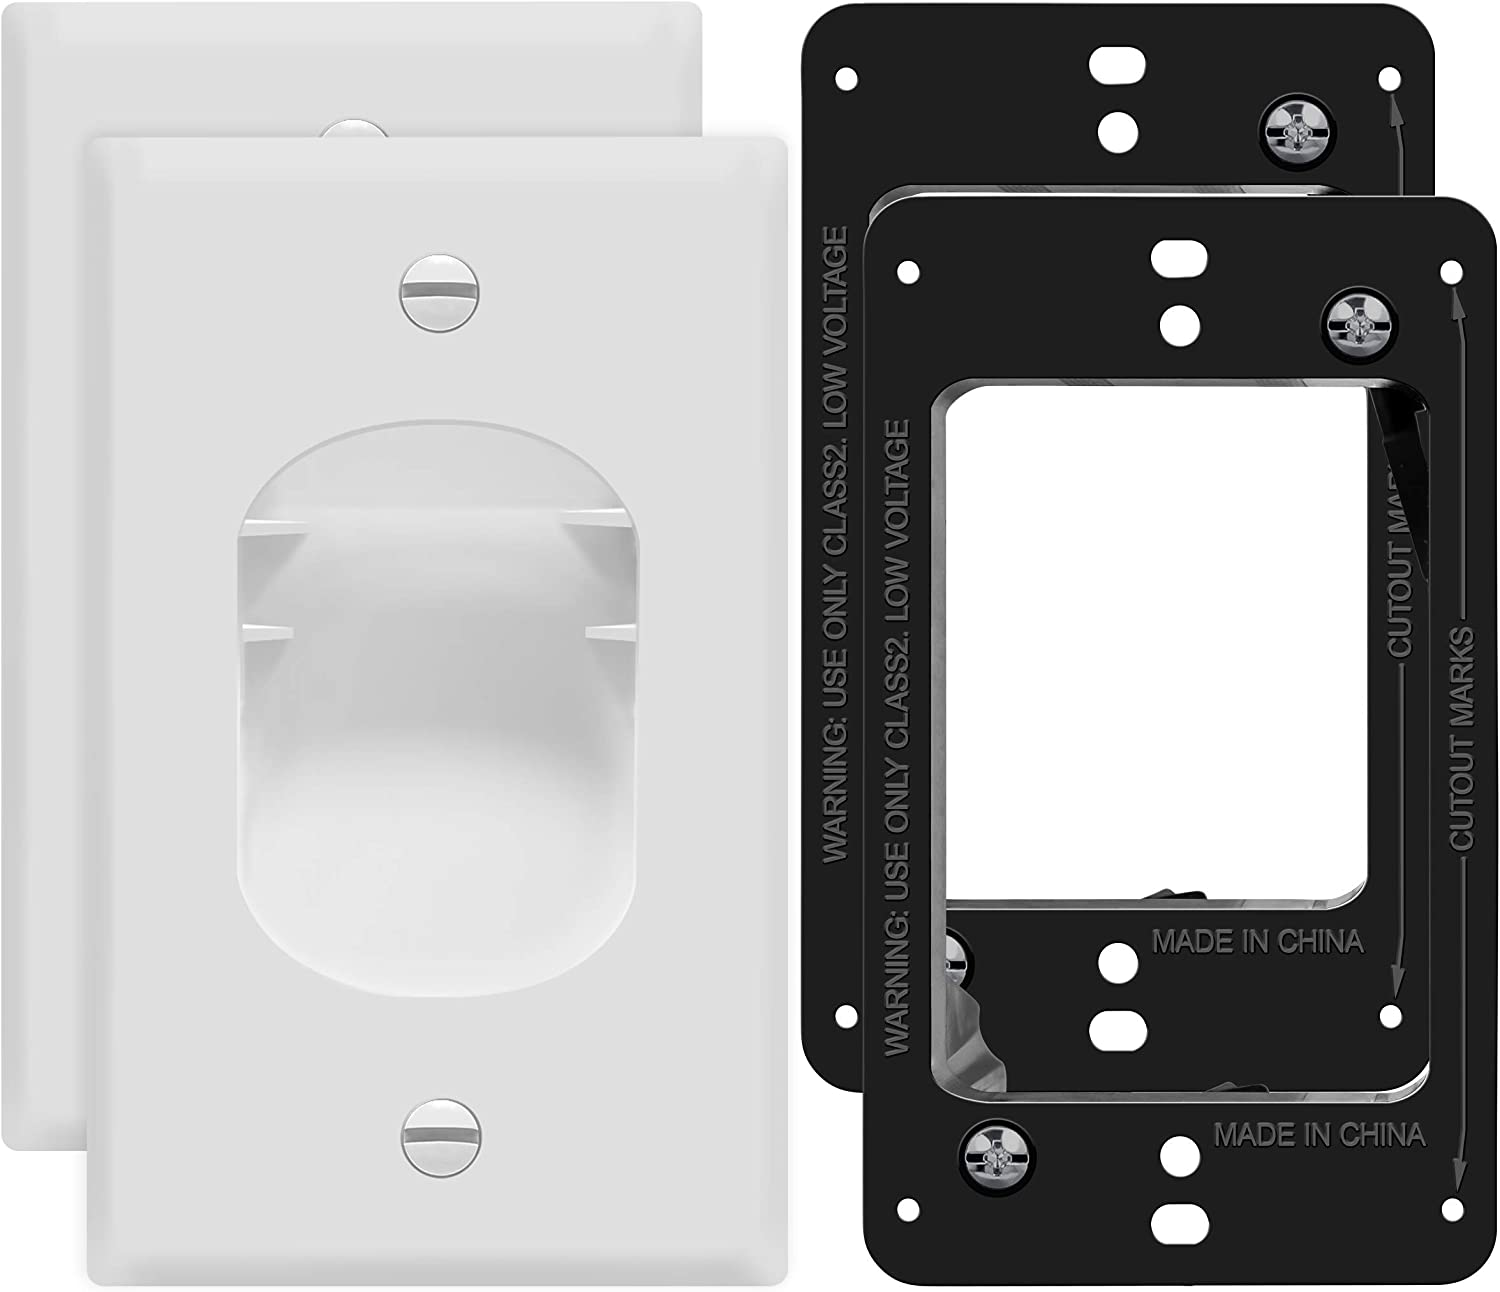 TOPGREENER Recessed Low Voltage Cable Wall Plate for Home Theaters, Pass-Through Wall Plate with Mounting Brackets, Size 1-Gang 4.50